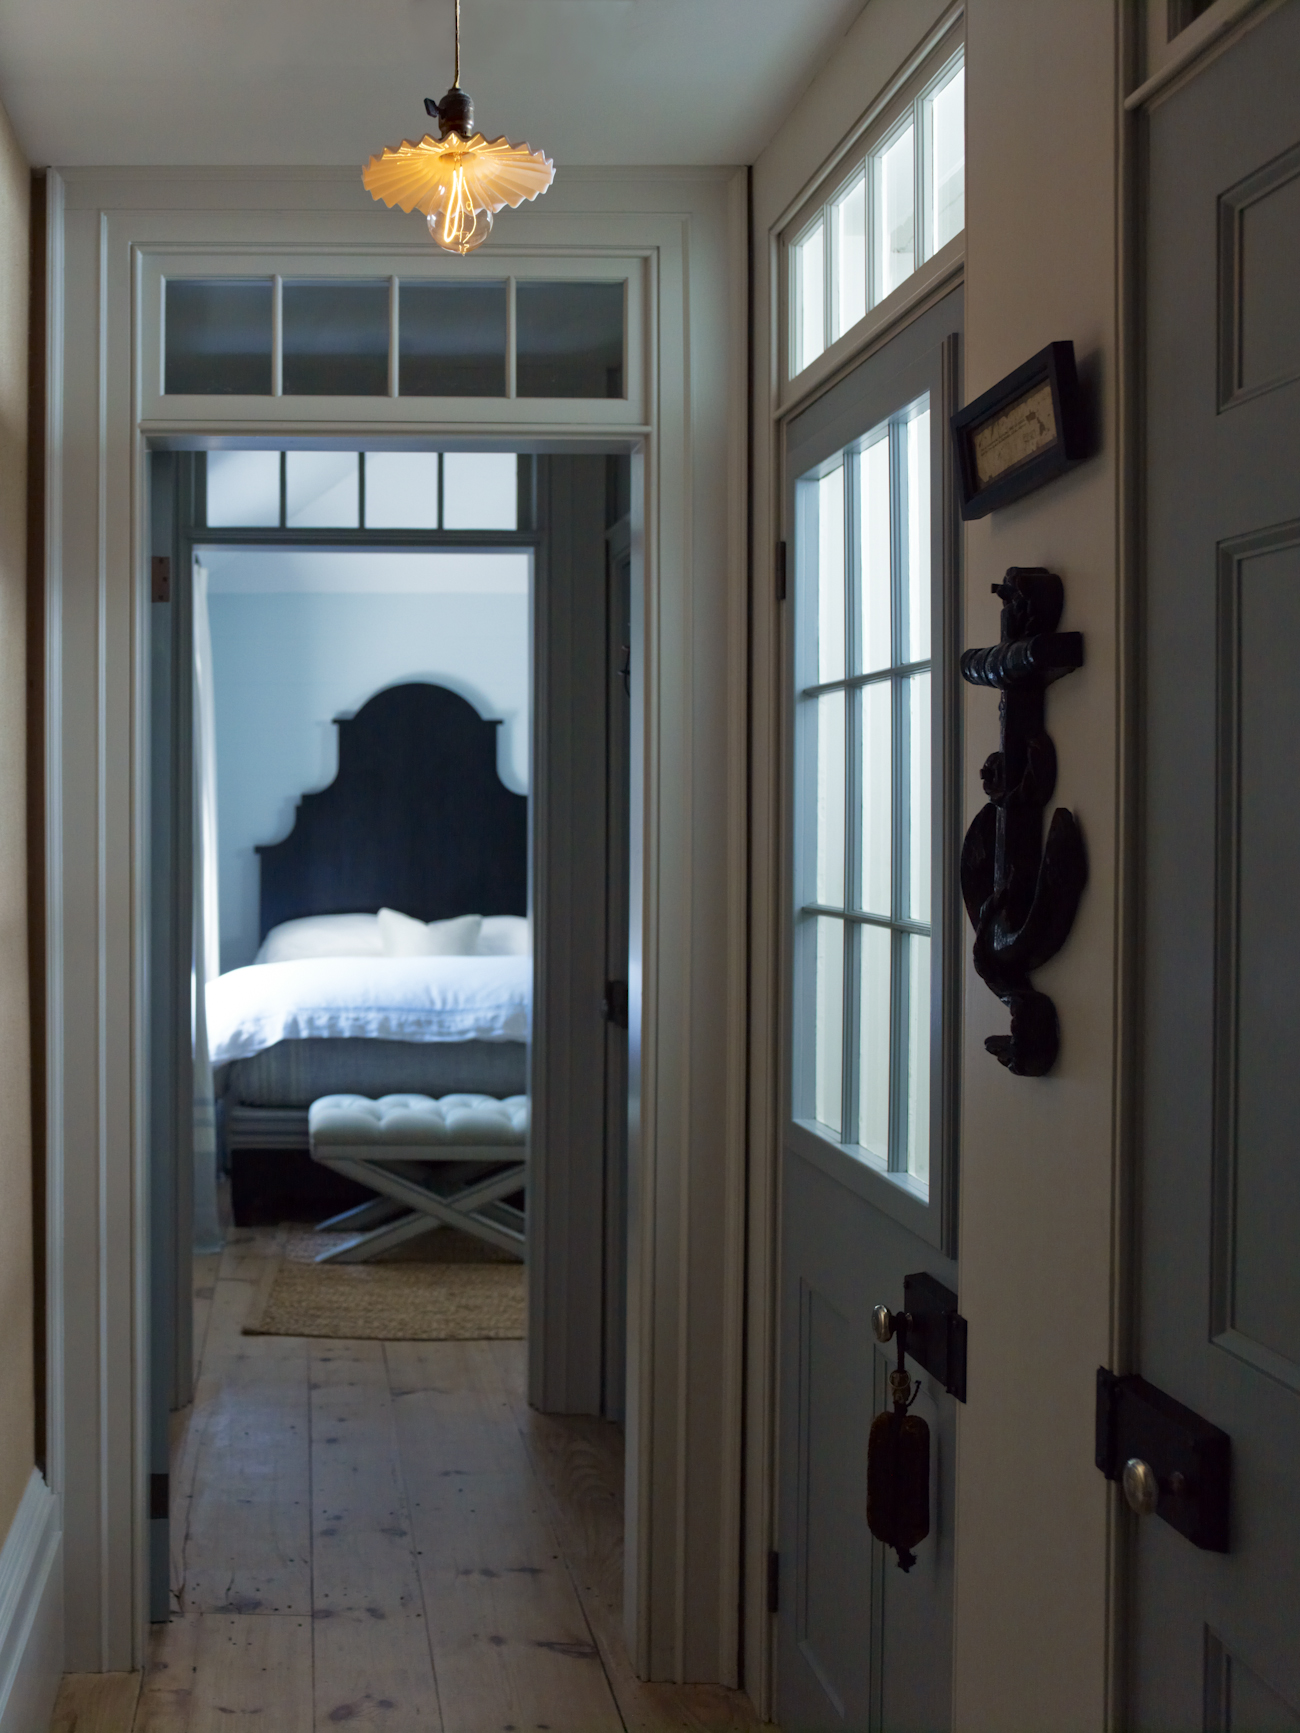 """""""The guest bedroom halls have several transoms, where light filters through the spaces, providing illumination onto vignettes and curiosities."""""""